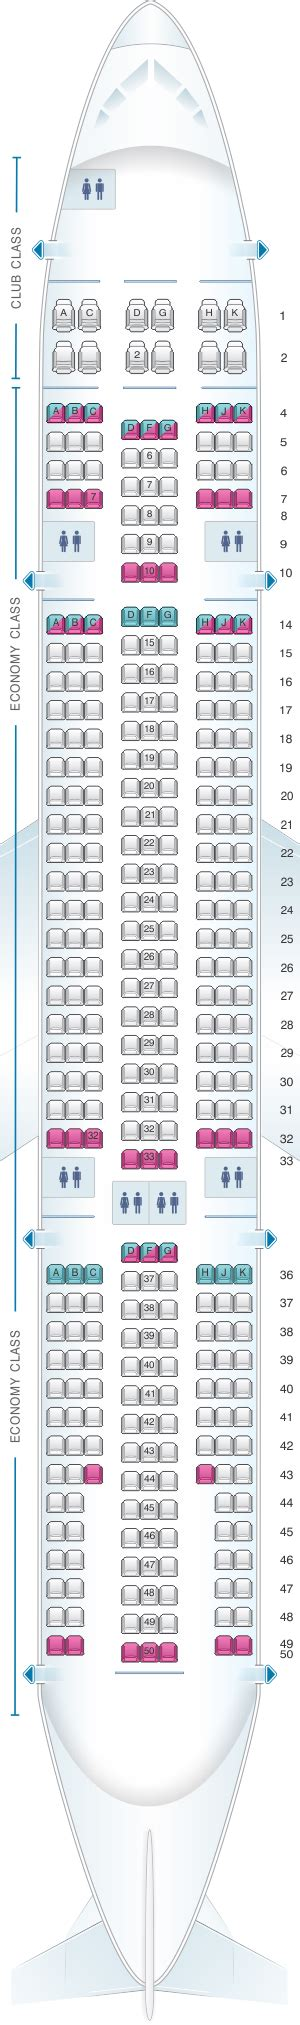 airbus a332 seat map seat map air transat airbus a330 200 seatmaestro